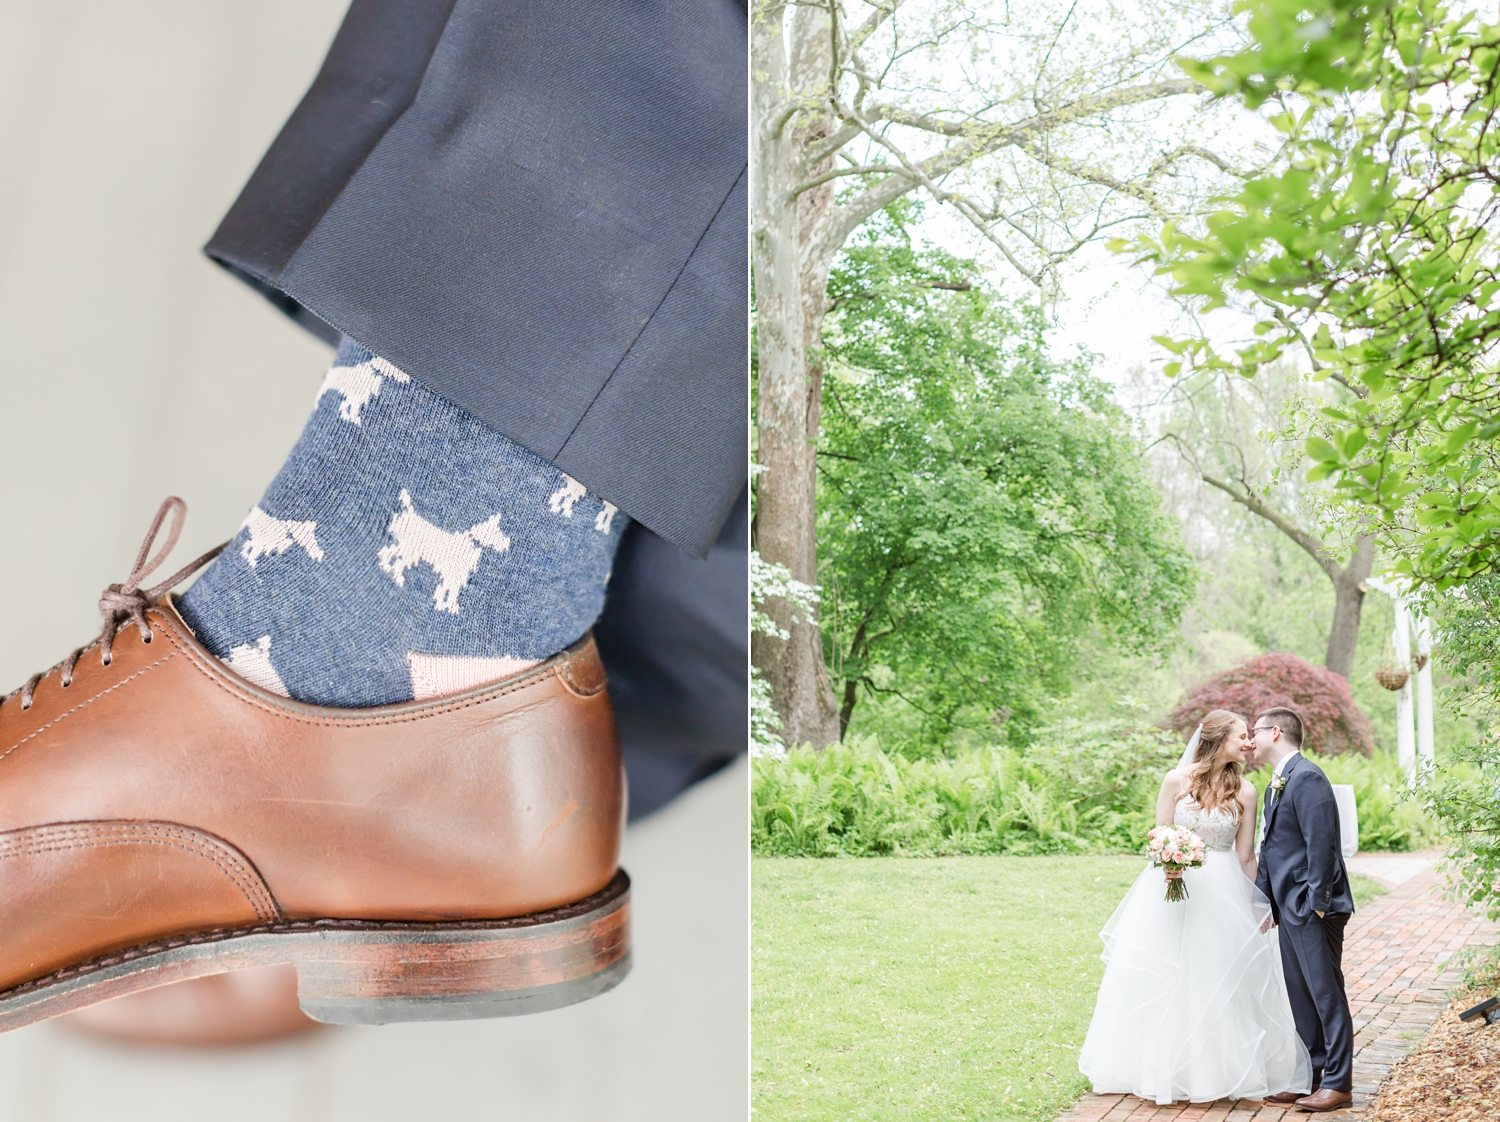 Chris loves dogs,  especially their pup Harper , so these were the perfect wedding socks!